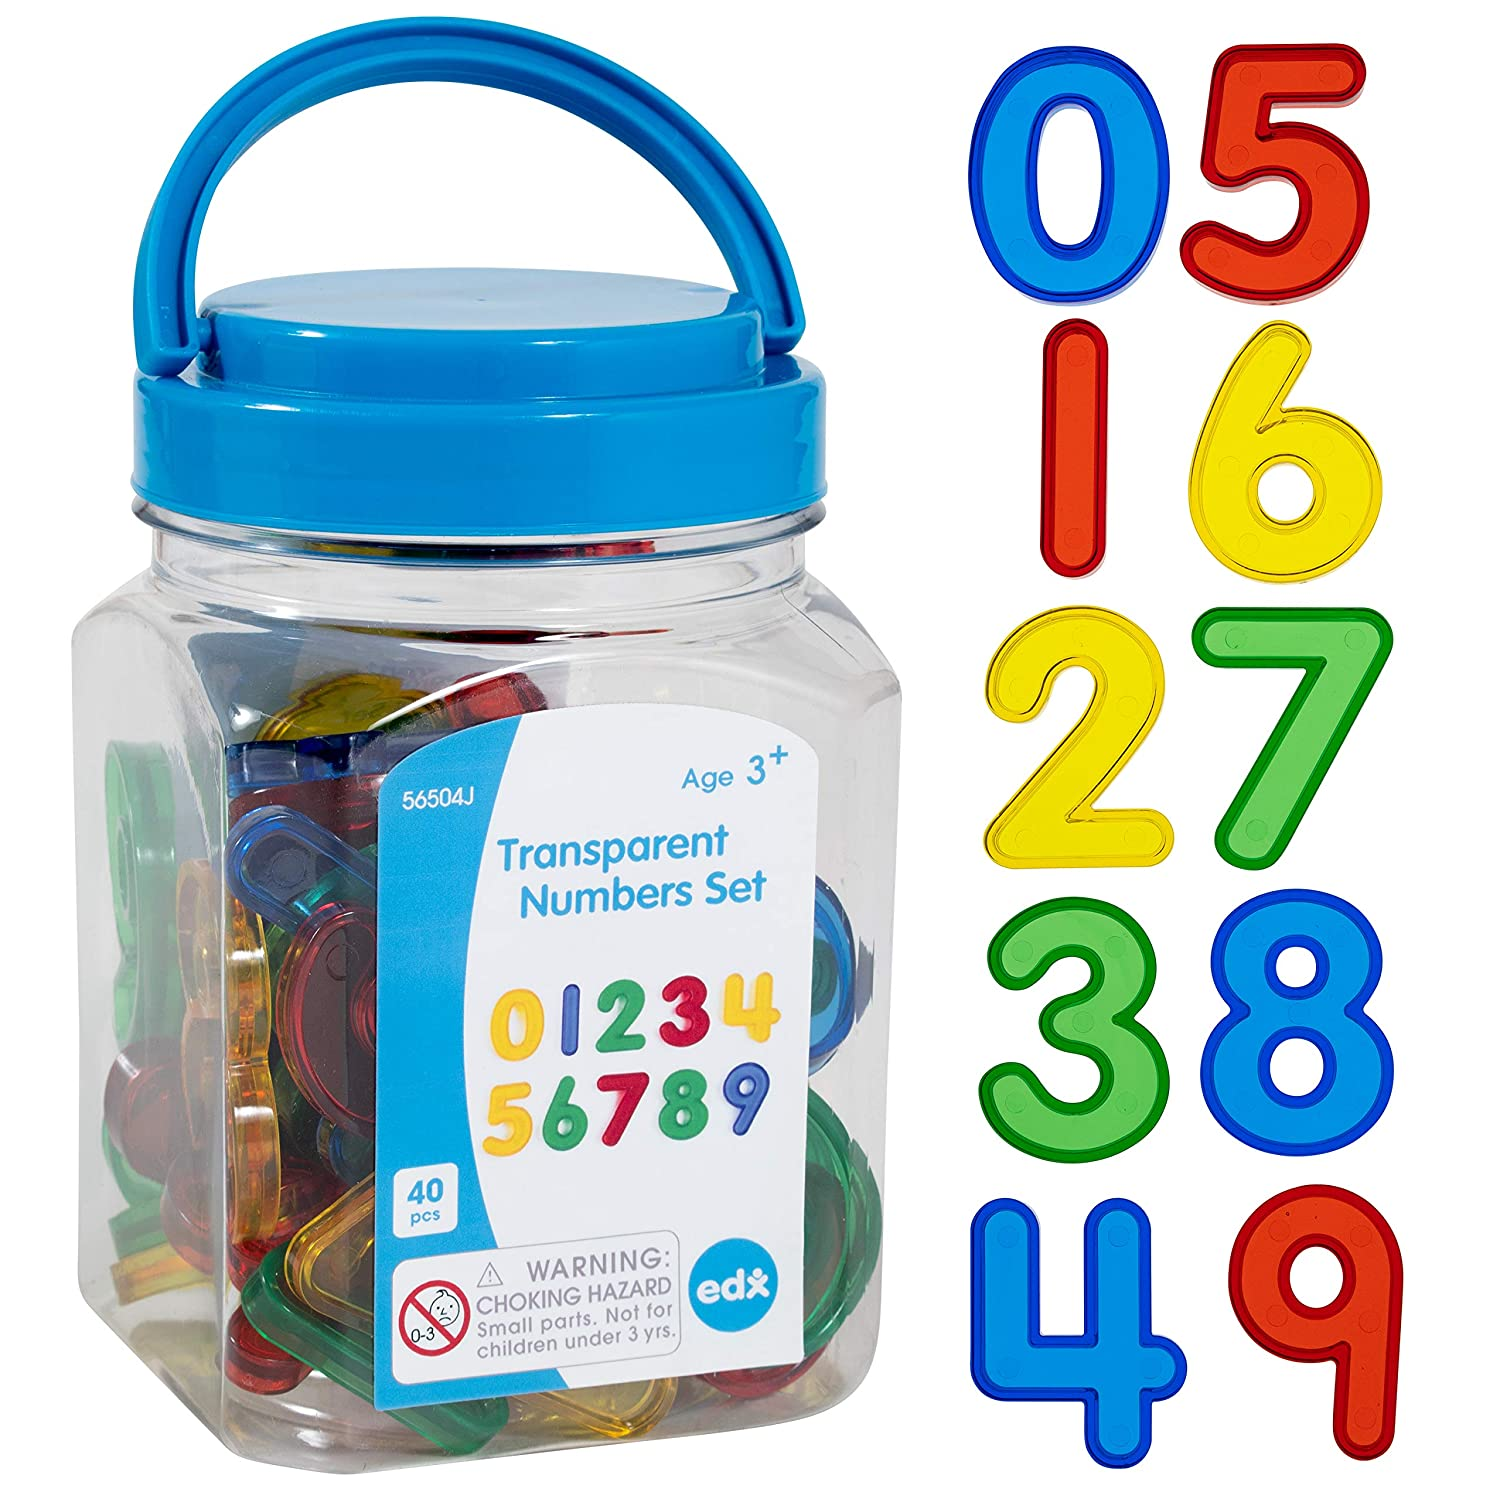 Transparent Numbers Set, Mini Jar